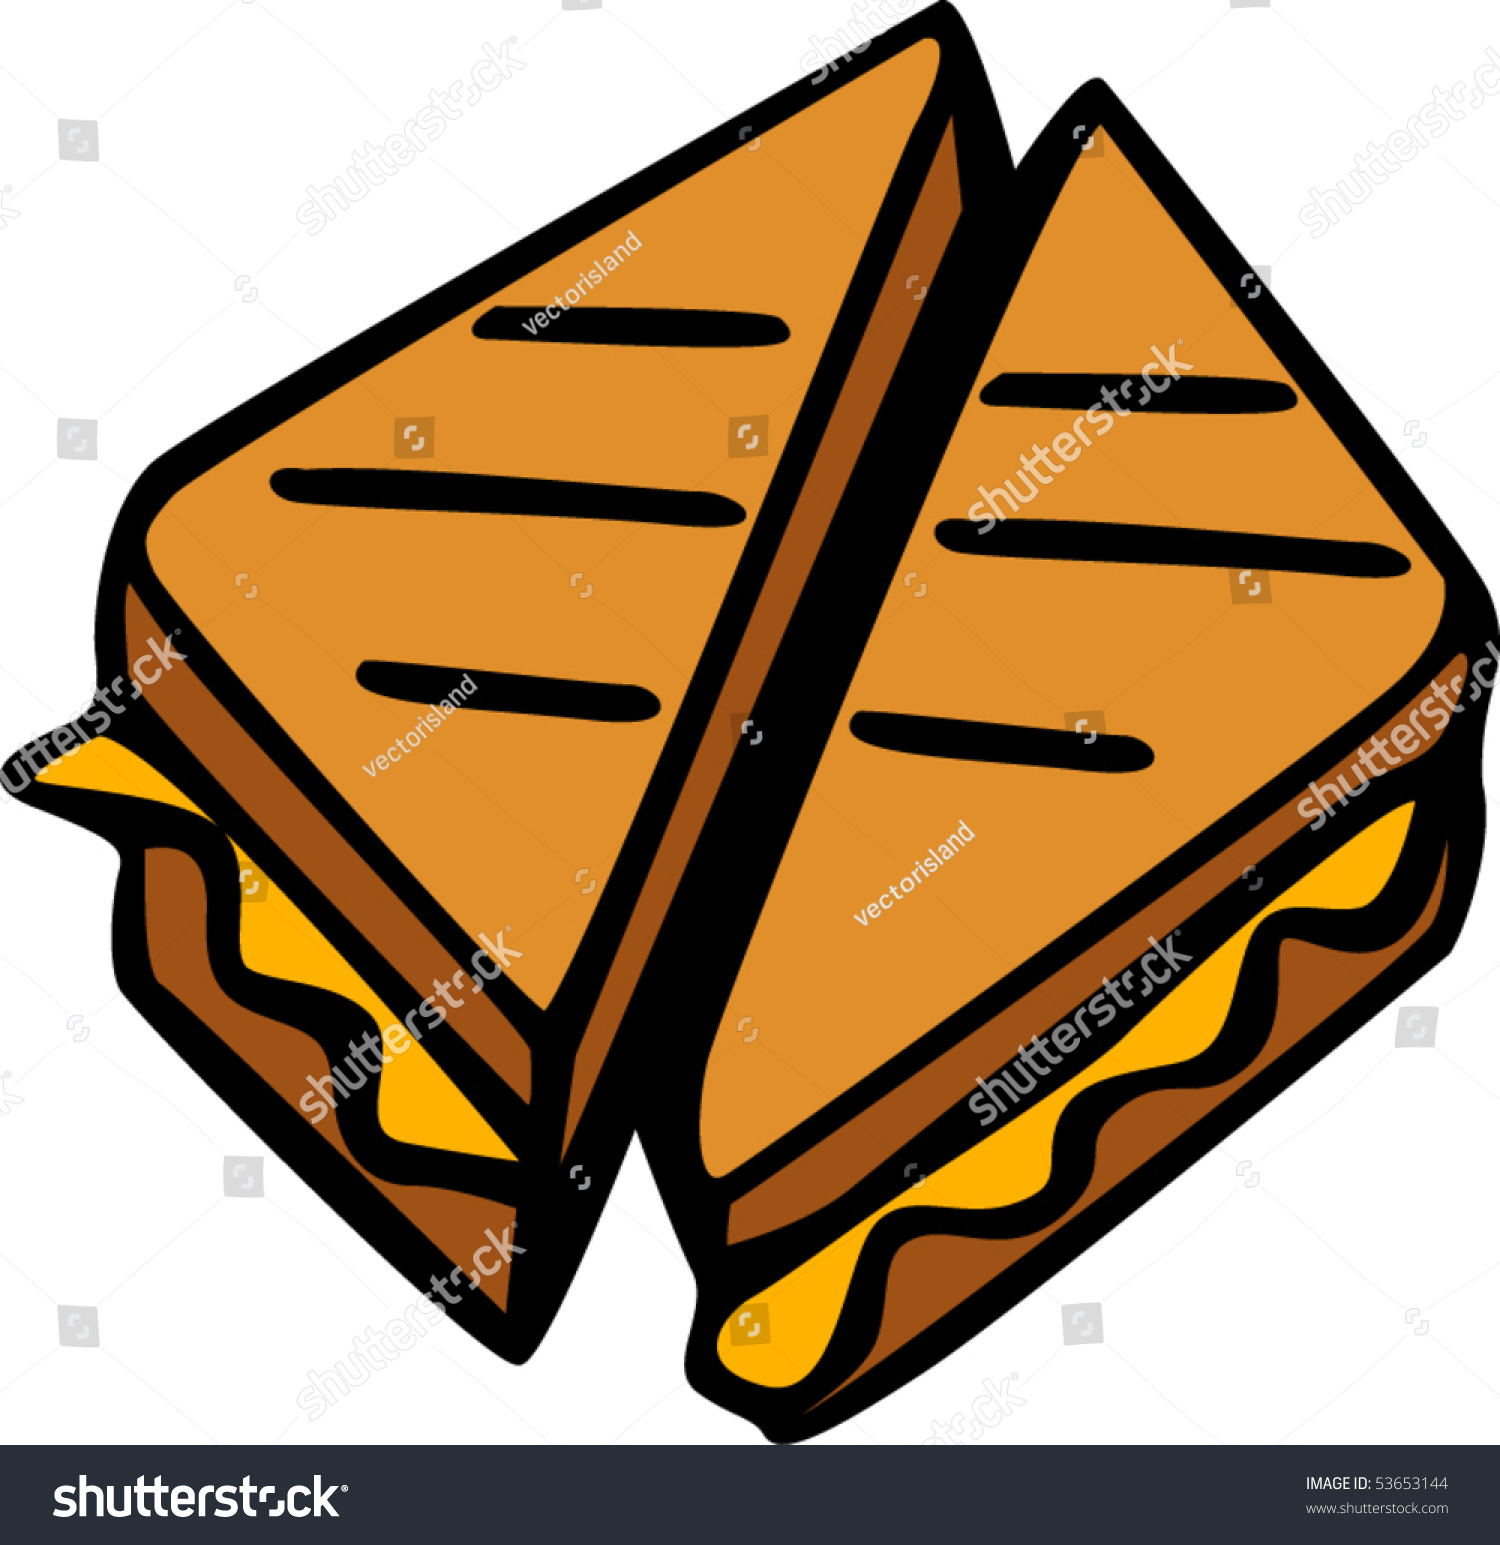 grilled cheese sandwich stock vector 53653144 shutterstock rh shutterstock com National Grilled Cheese Day Grilled Cheese Day